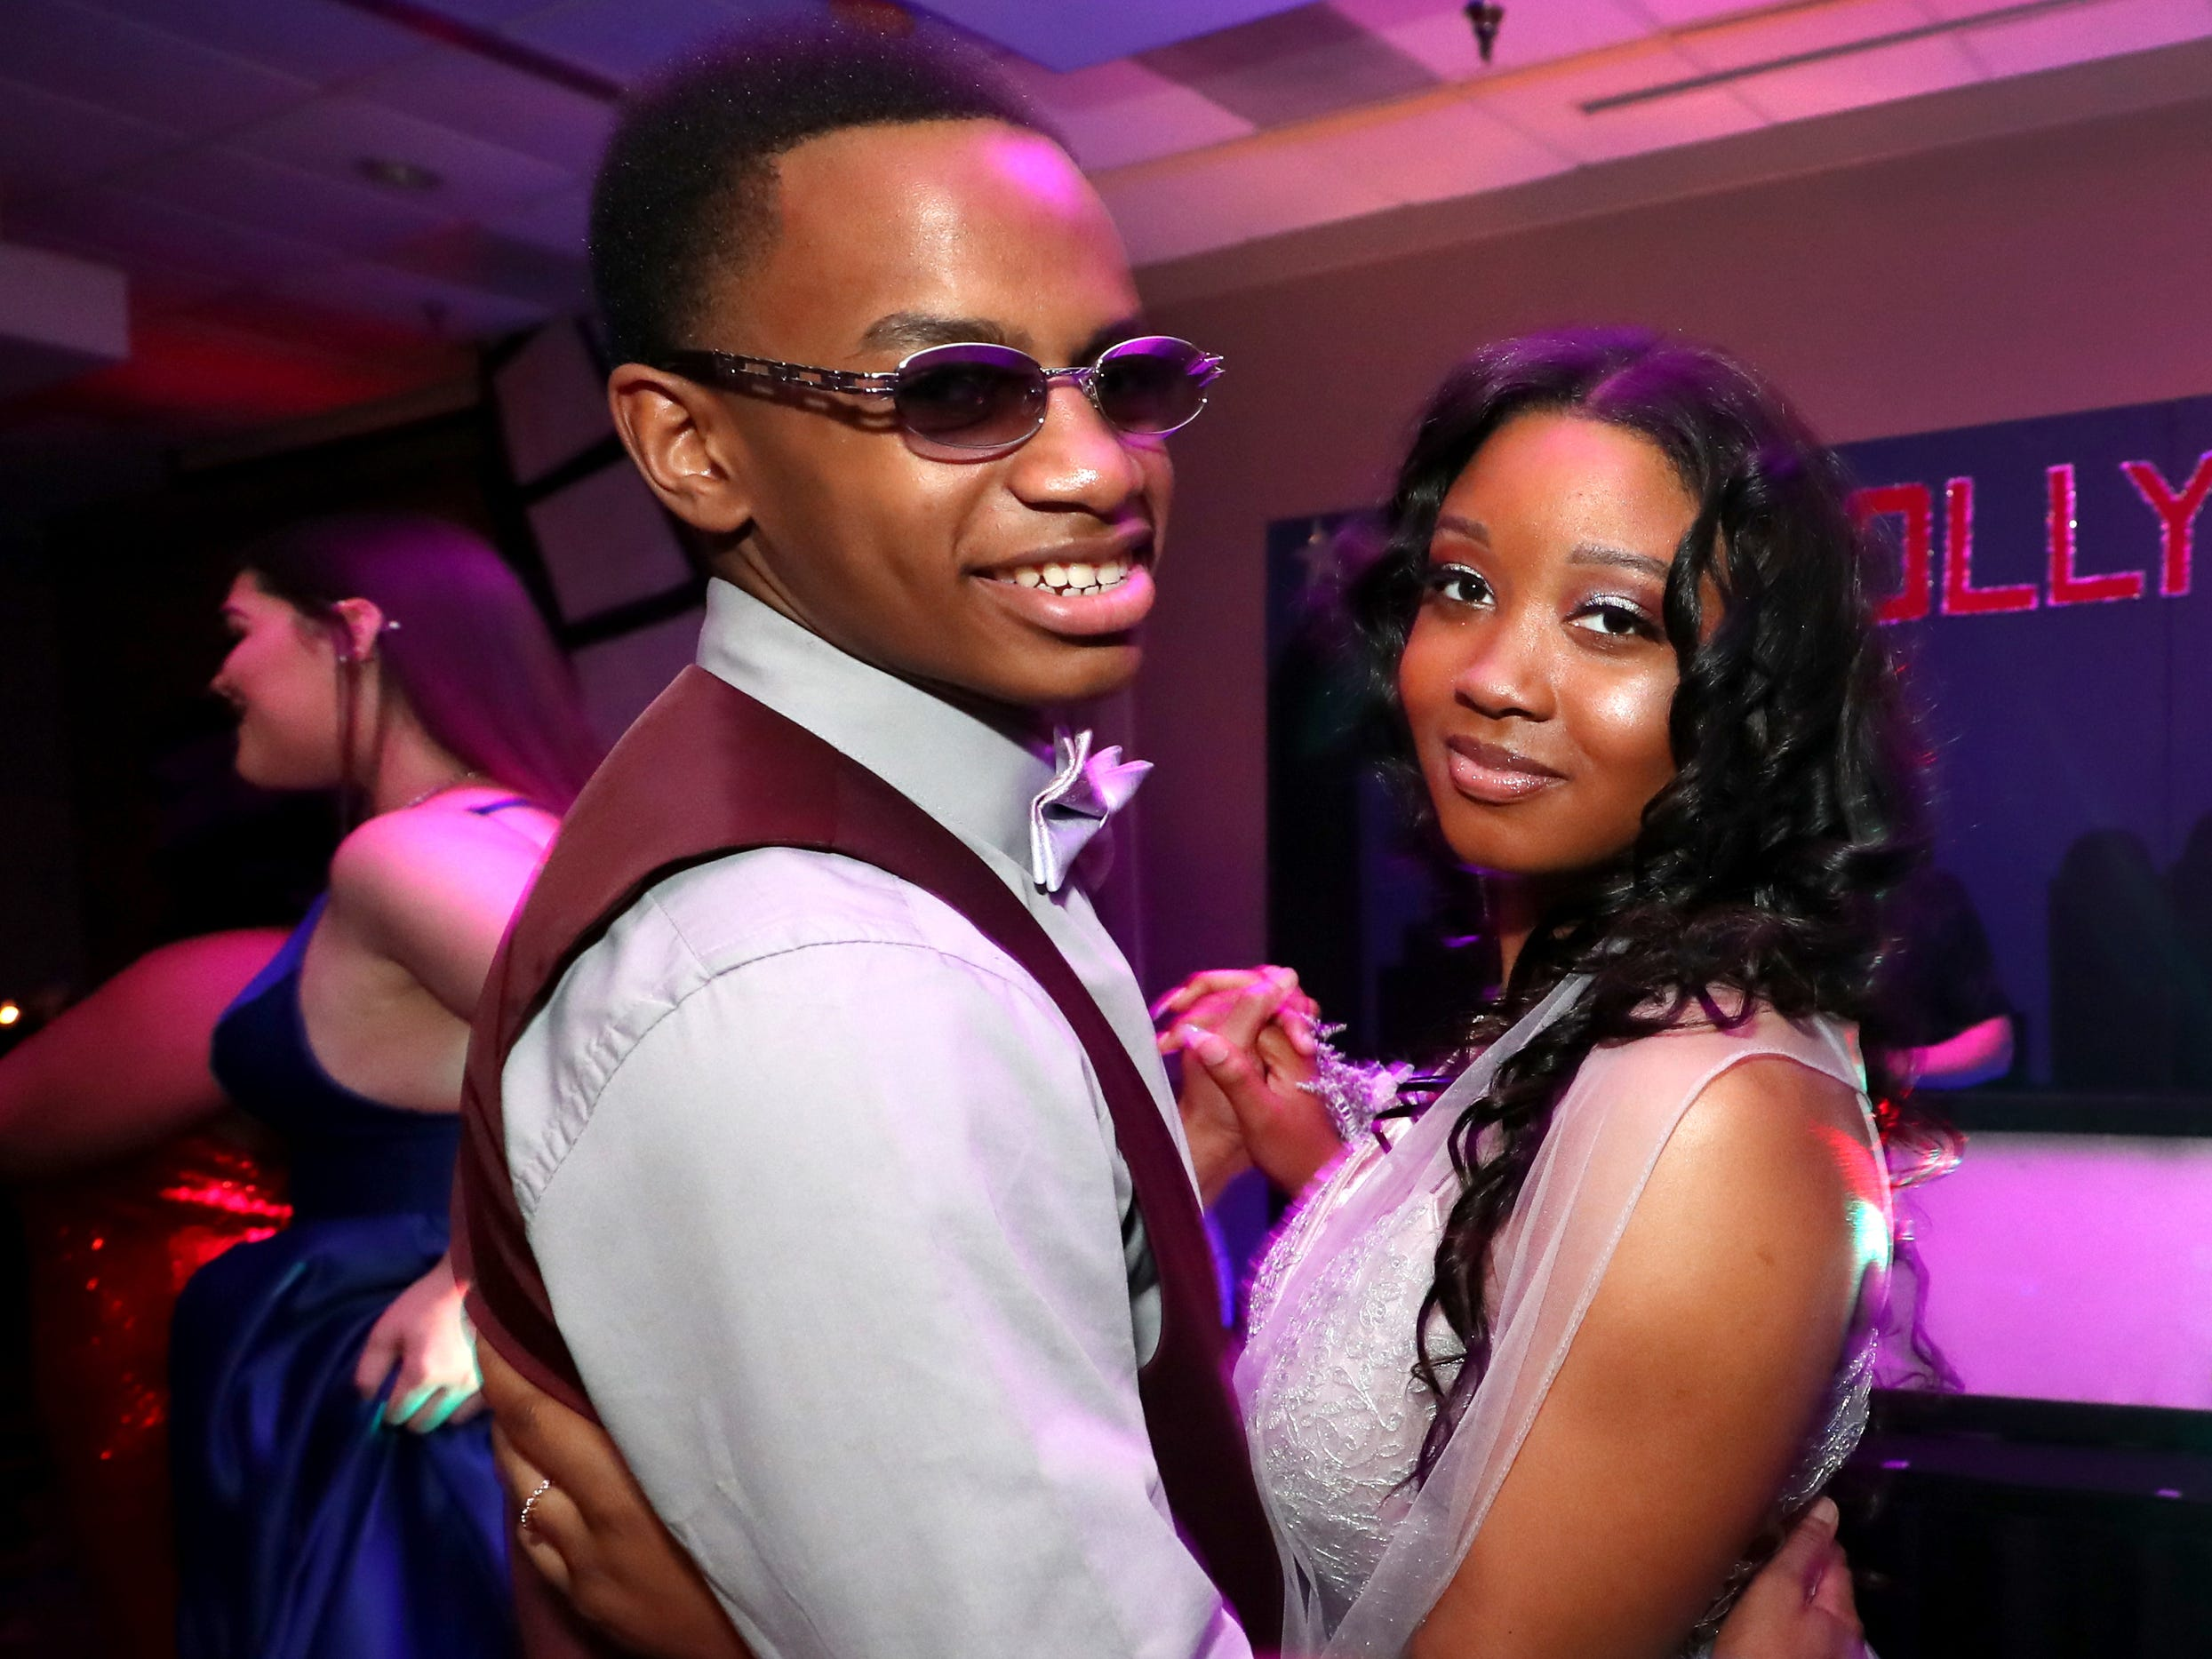 Aalijah Daniel, left, and Antoinette Sherrell, right dance on the dance floor during a slow dance during Holloway's prom at the DoubleTree on Thursday April 18, 2019.